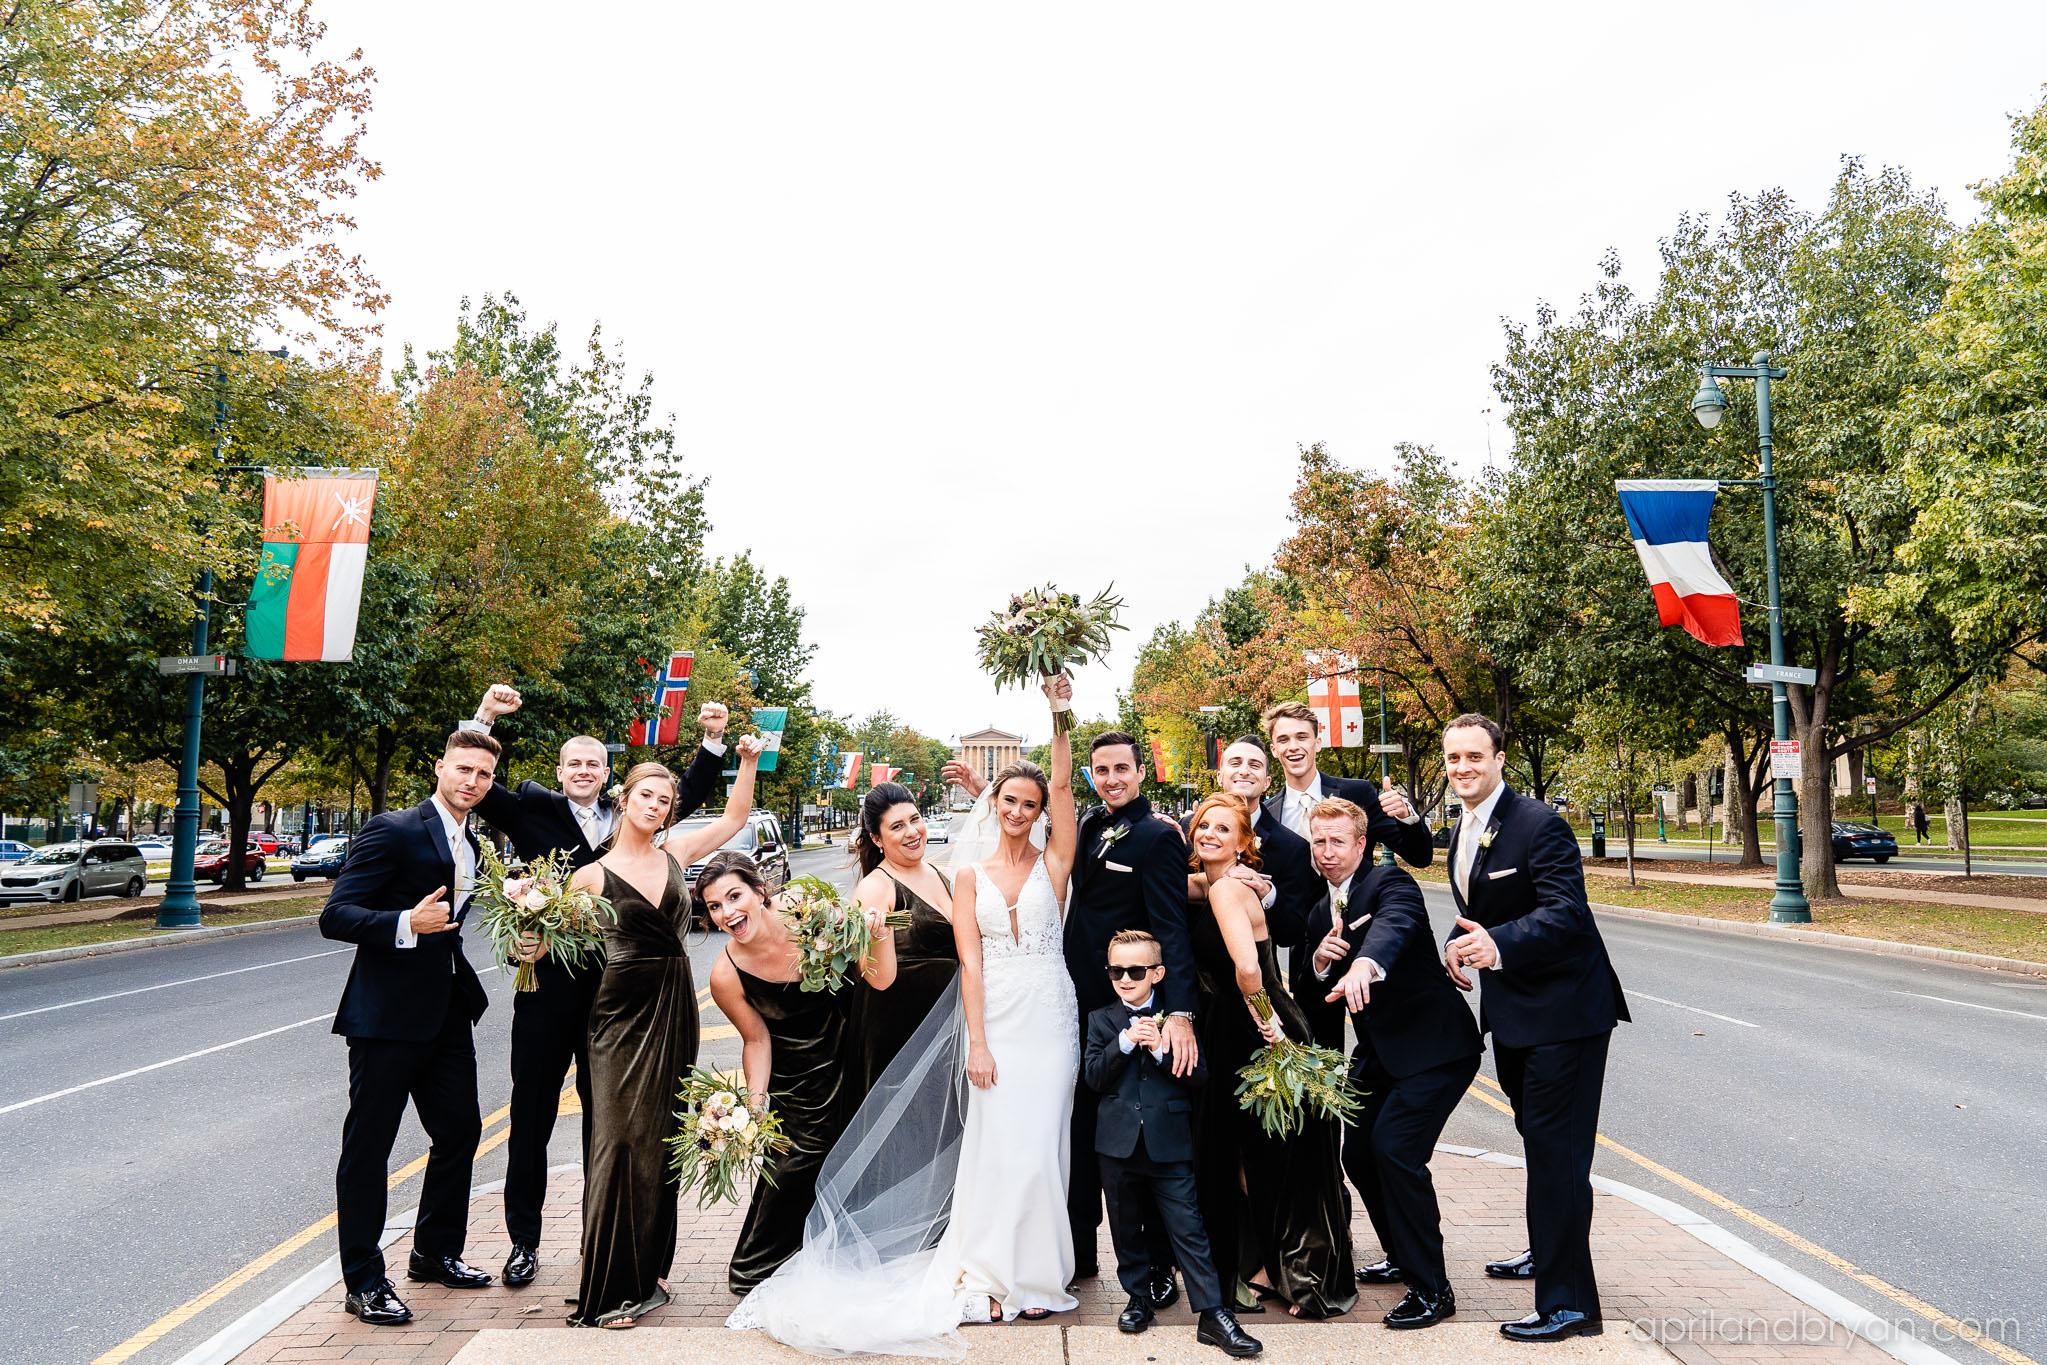 The whole bridal party poses in front of the Philadelphia Art Museum. Shot by April & Bryan Photography. Featured on Dream Weddings.